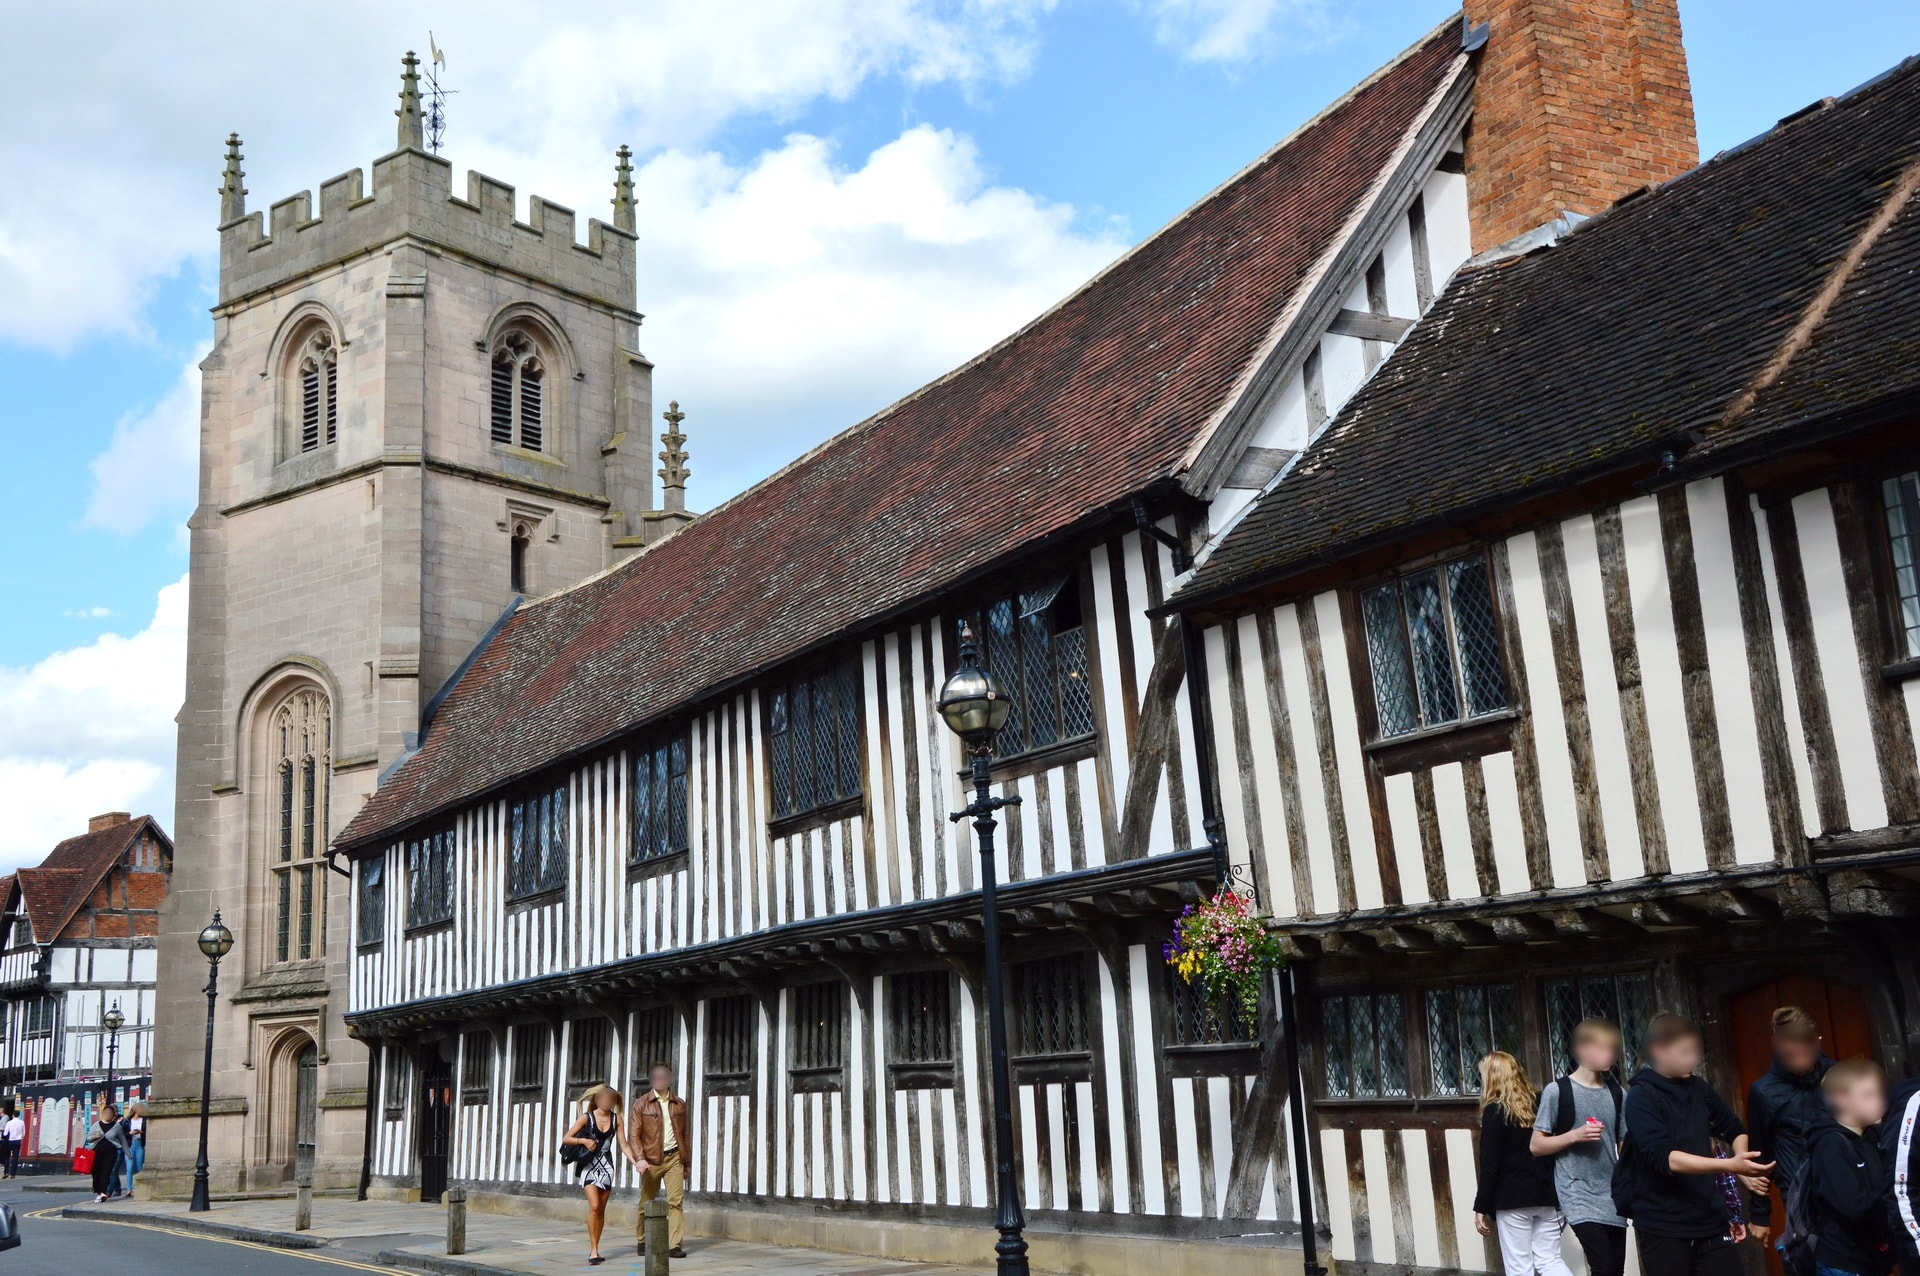 Shakespeare is believed to have attended this grammar school